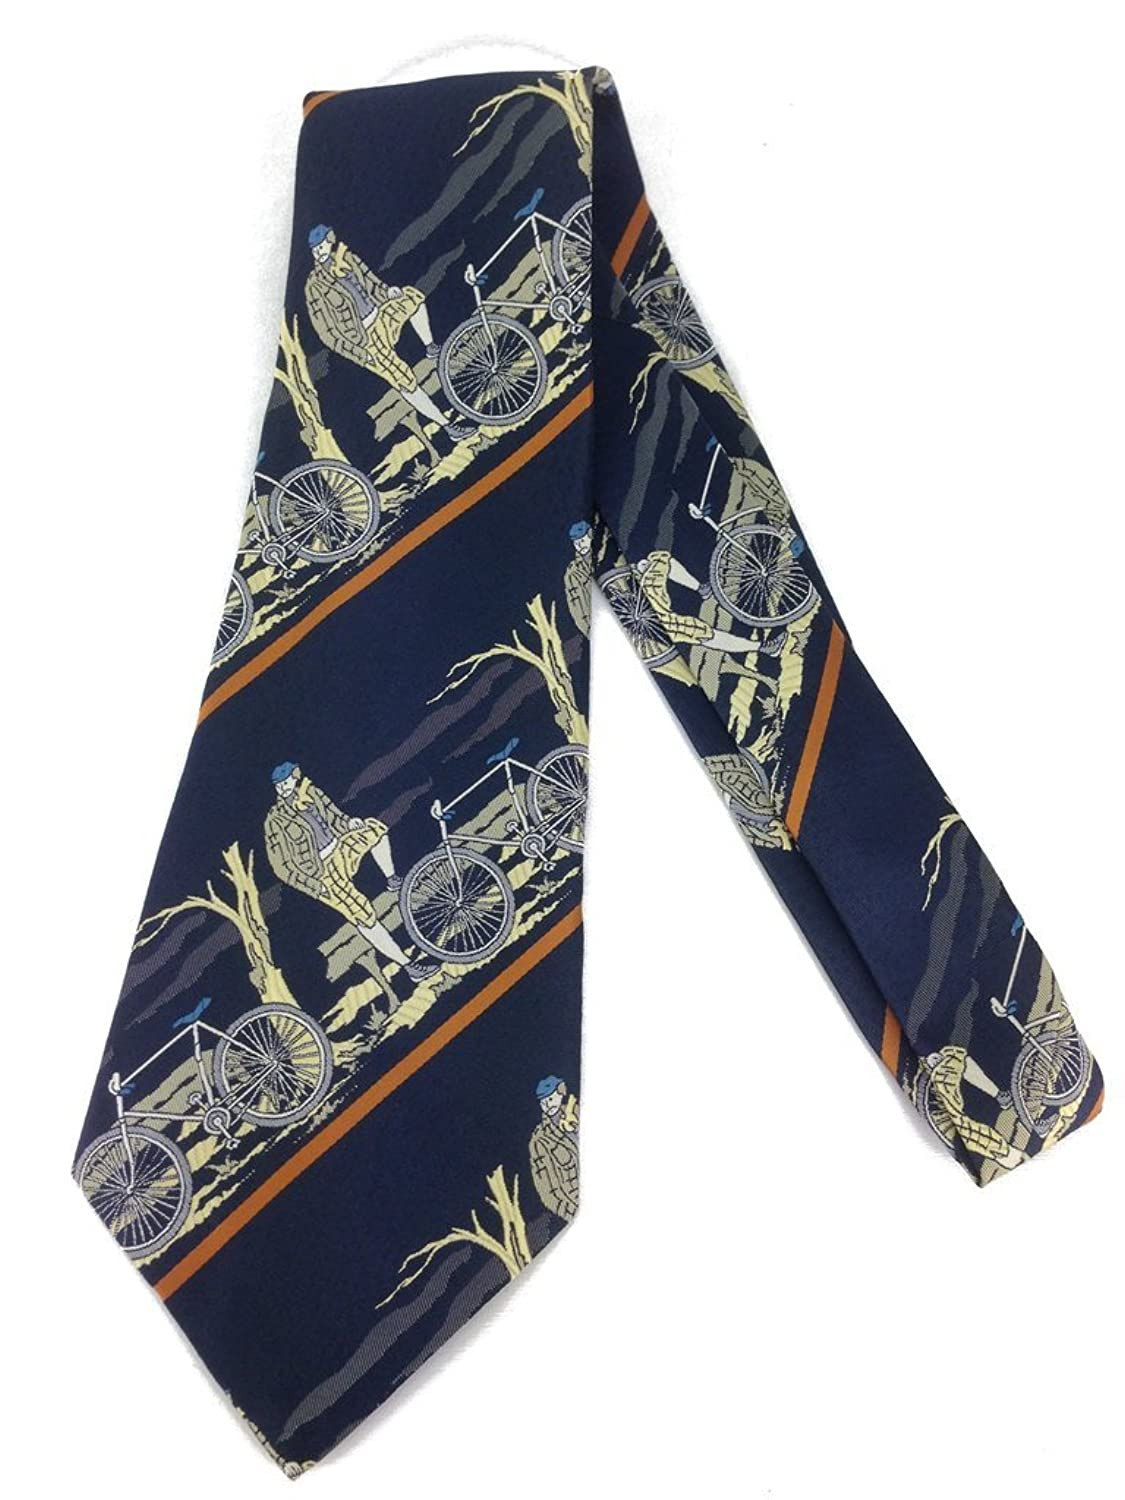 1920s Bow Ties | Gatsby Tie,  Art Deco Tie Cyclist Vintage Neck Tie - Jacquard Weave Wide Kipper - Bycicle $24.95 AT vintagedancer.com